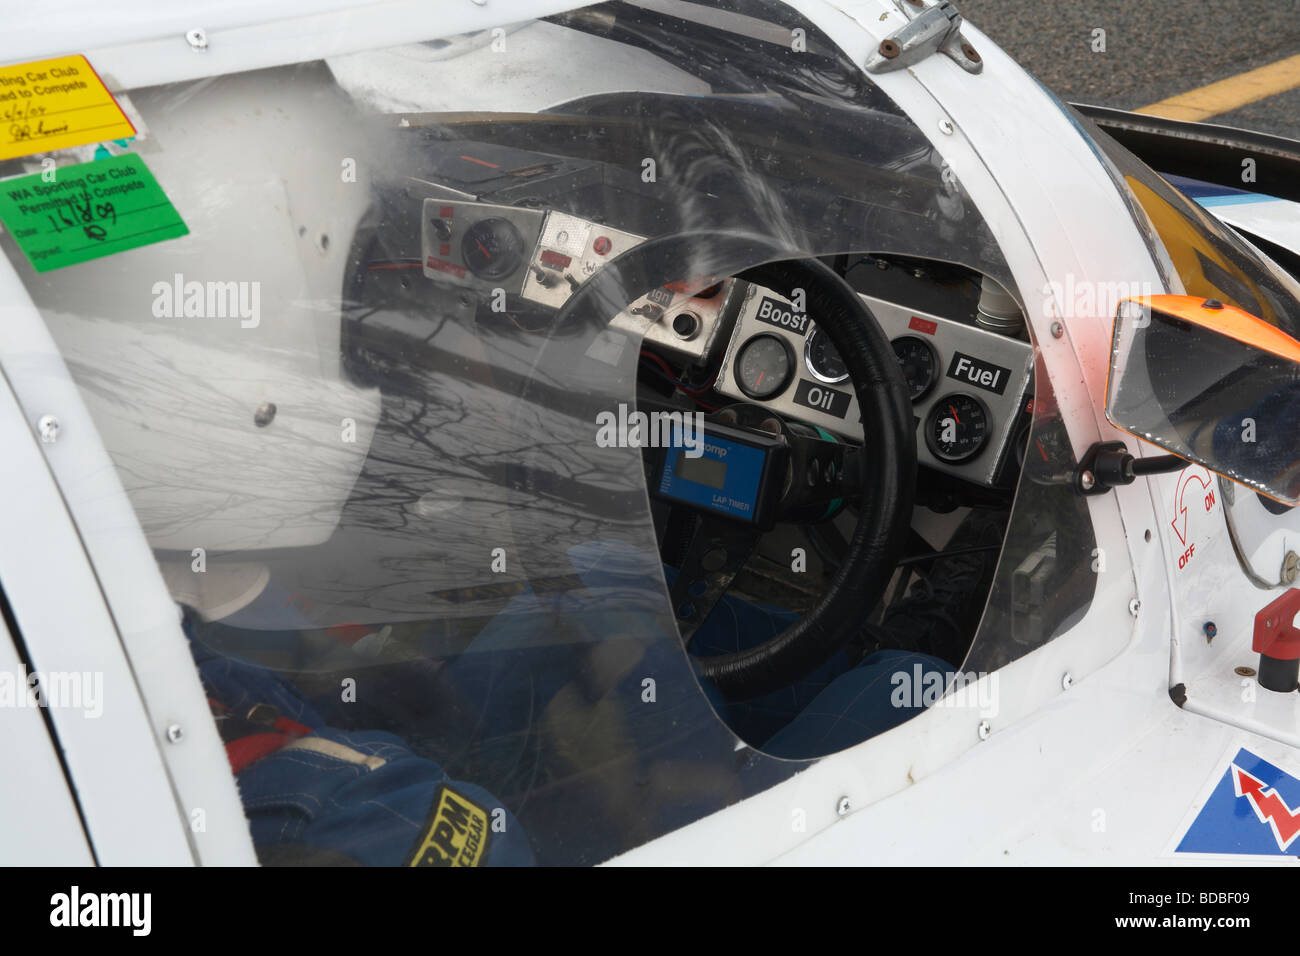 Looking into the cockpit of a circuit race car - Stock Image